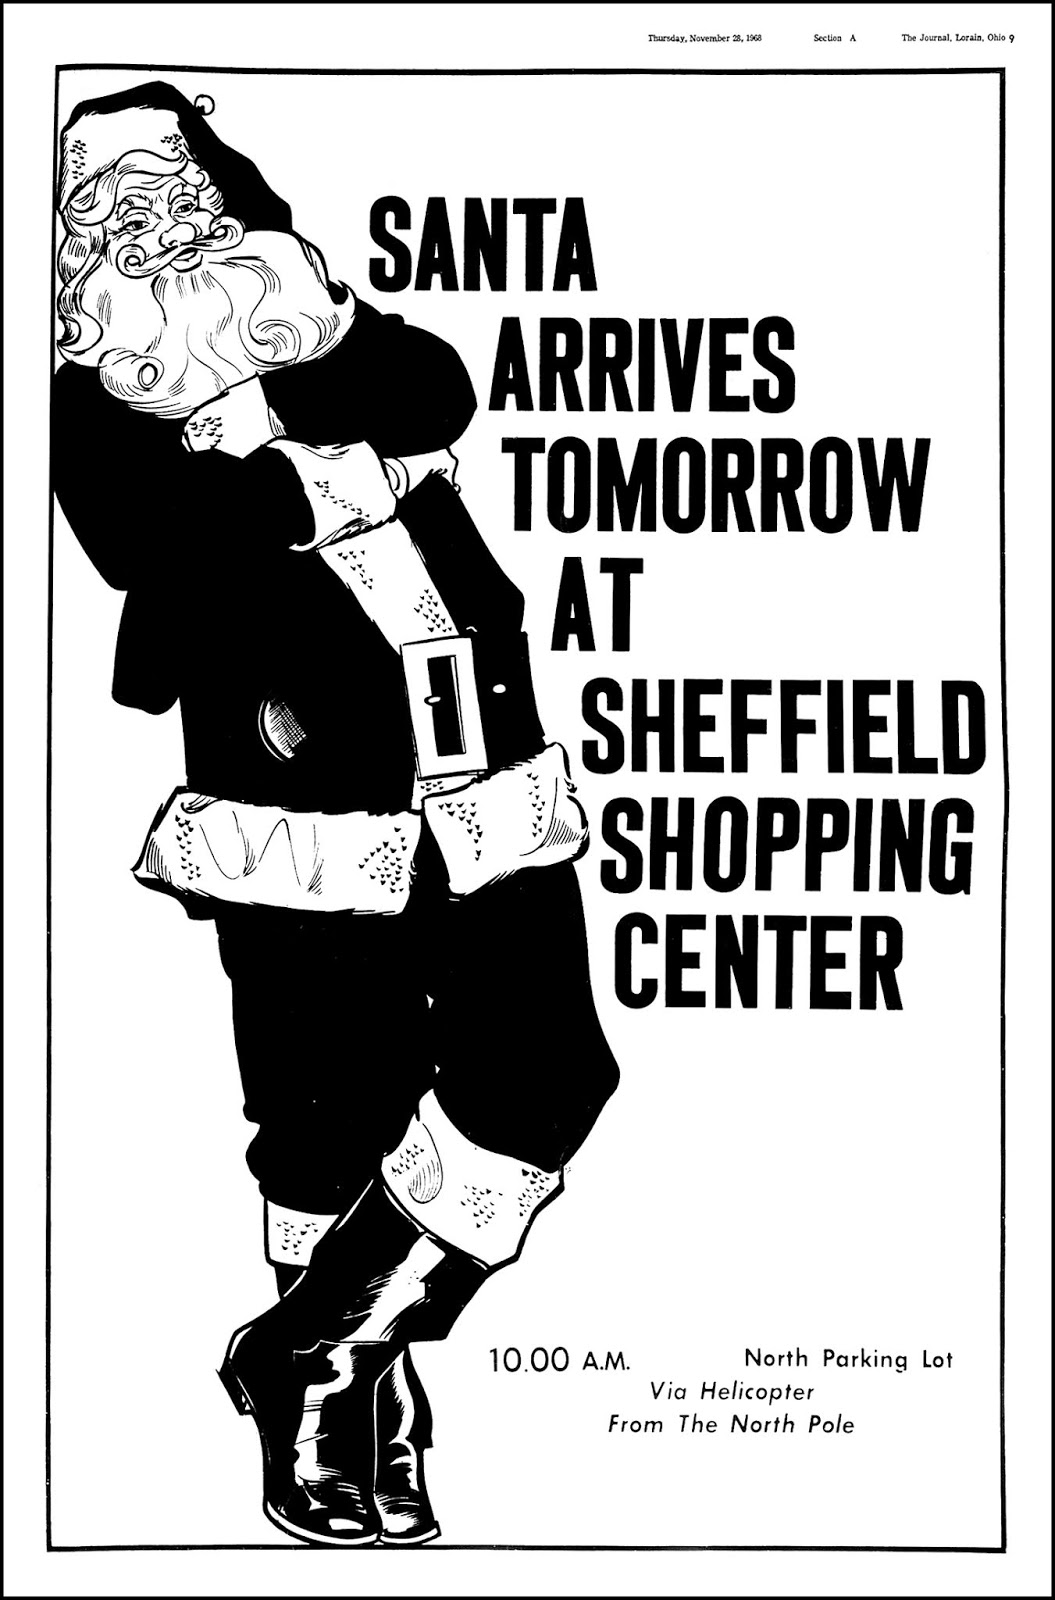 Sheffield Shopping Center - published in the Lorain Journal - November 29, 1968